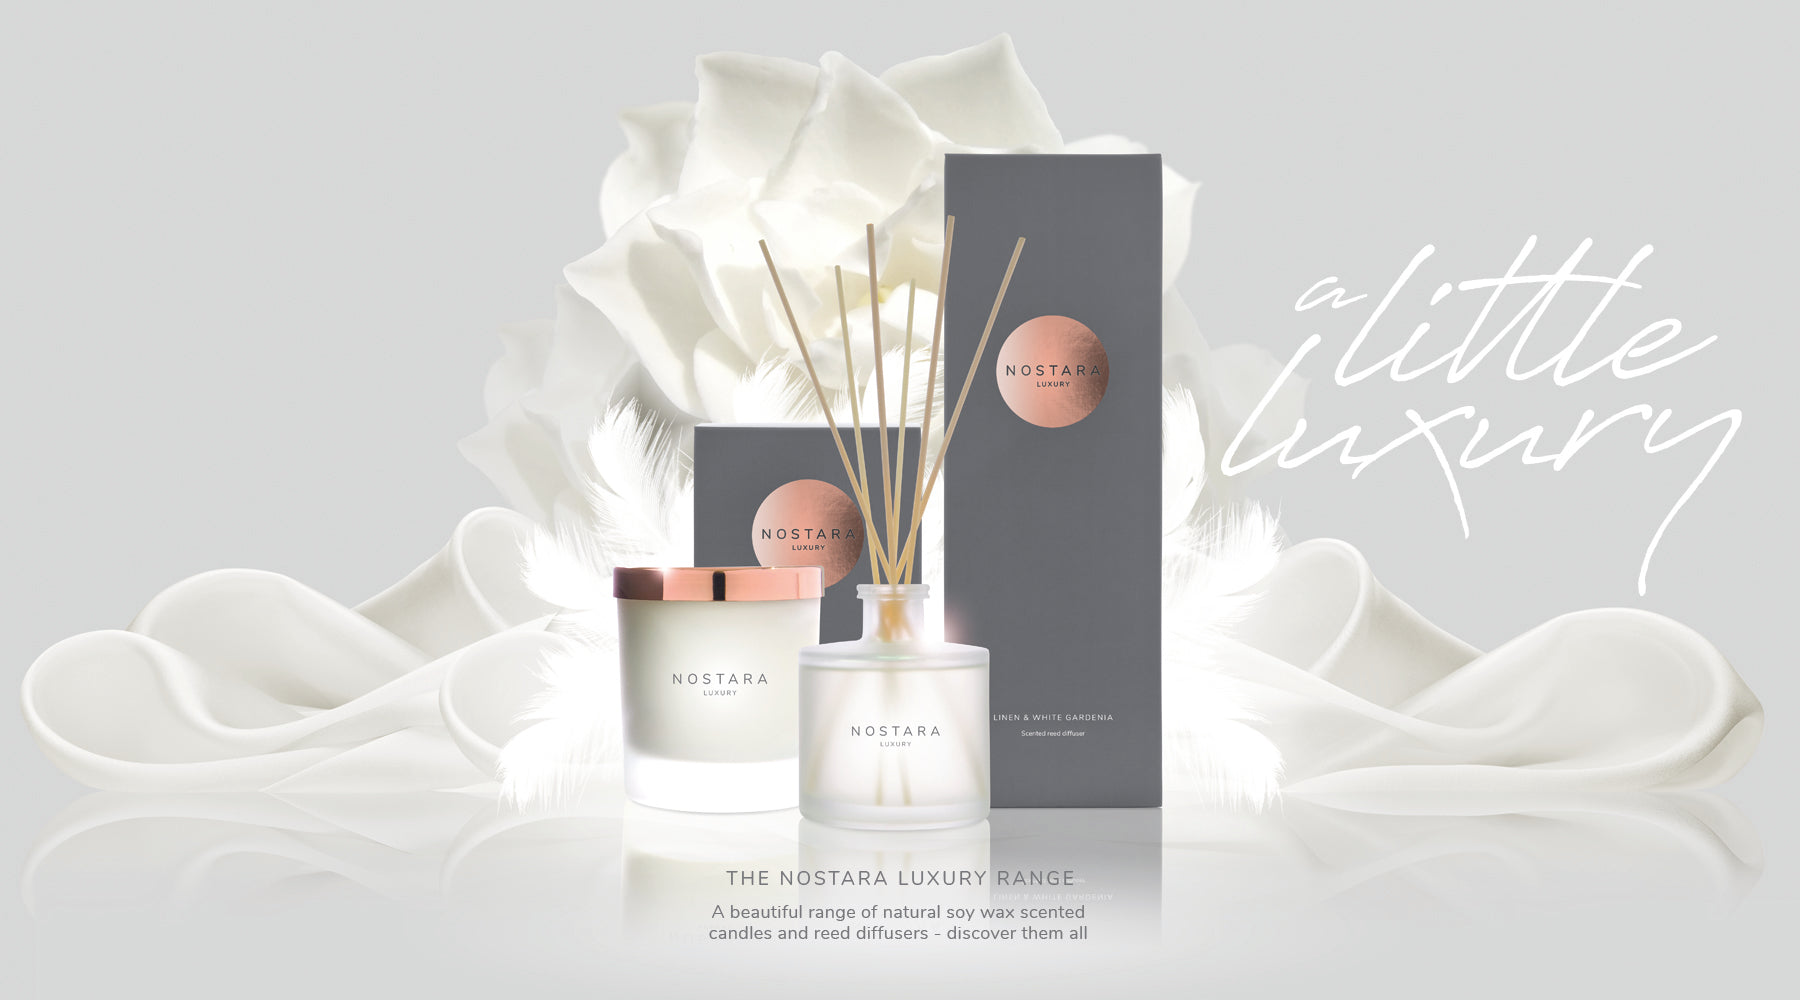 Nostara core range soy candle and reed diffuser collection